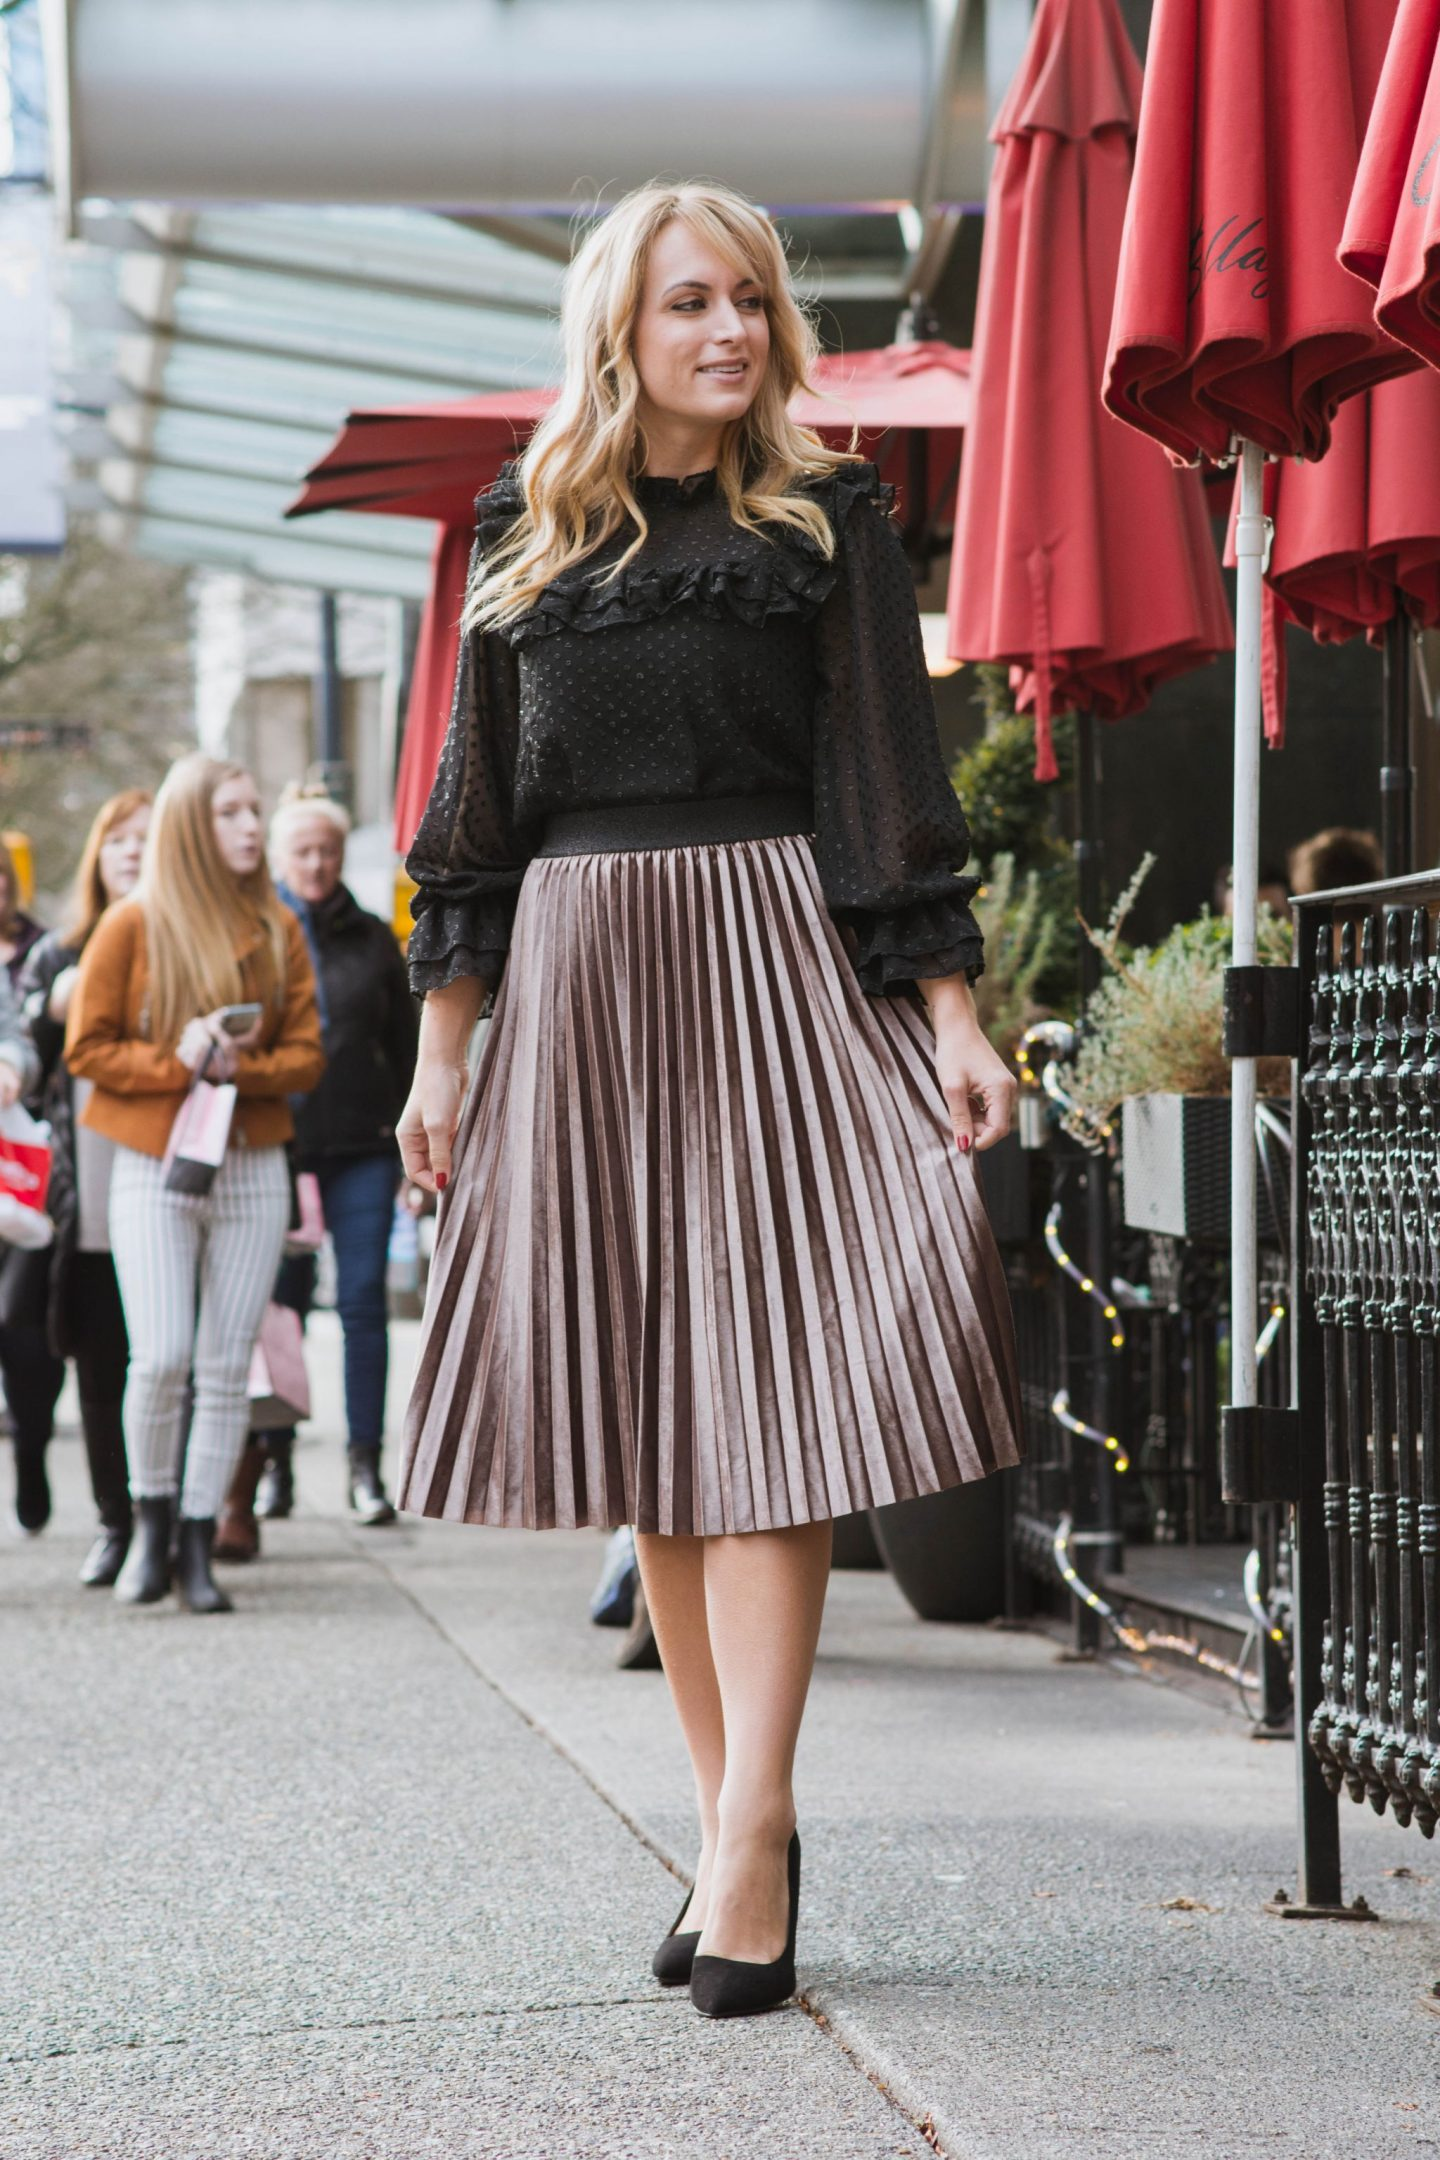 one-woman-wearing-pleated-velvet-midi-skirt-and-black-blouse